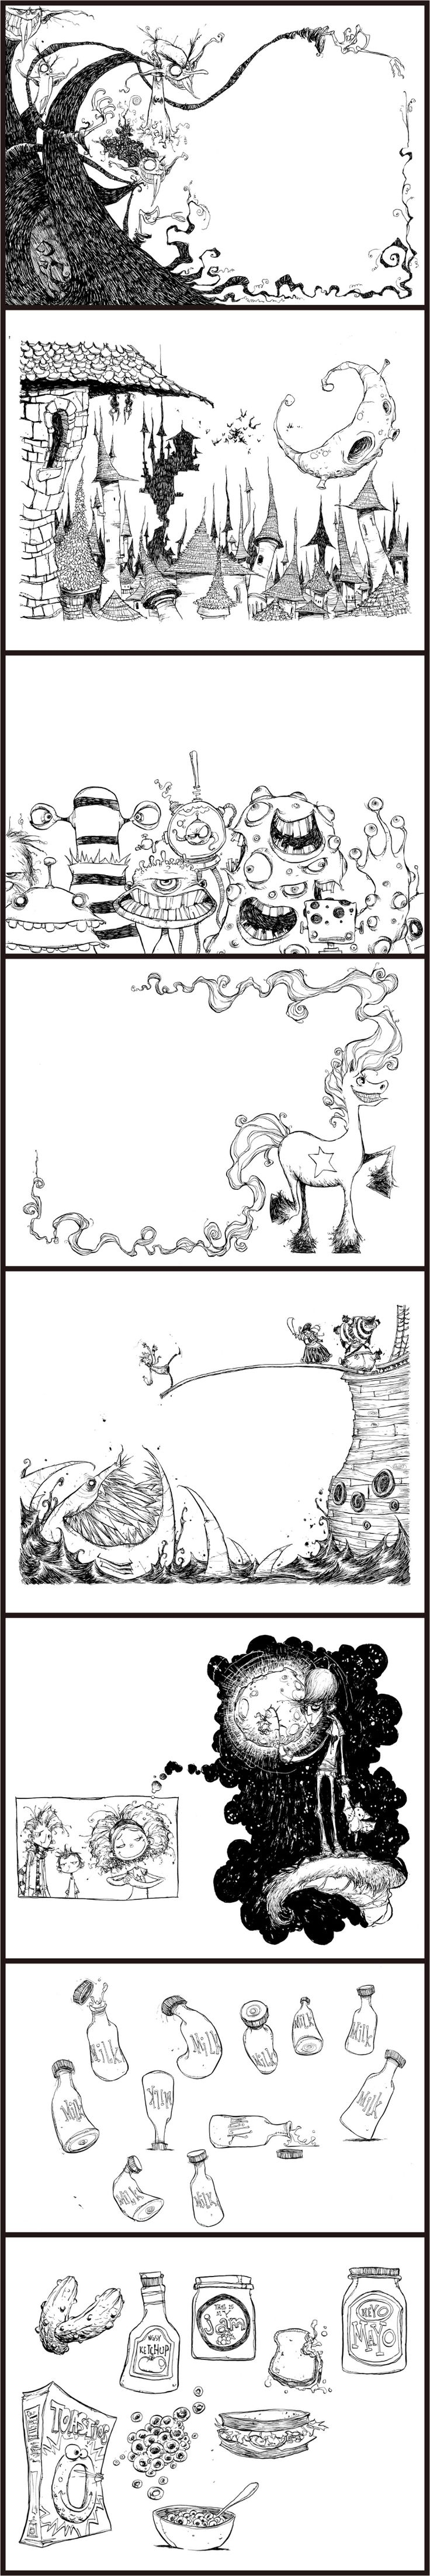 "Skottie Young: illustrations for Neil Gaiman's ""Fortunately The Milk"""